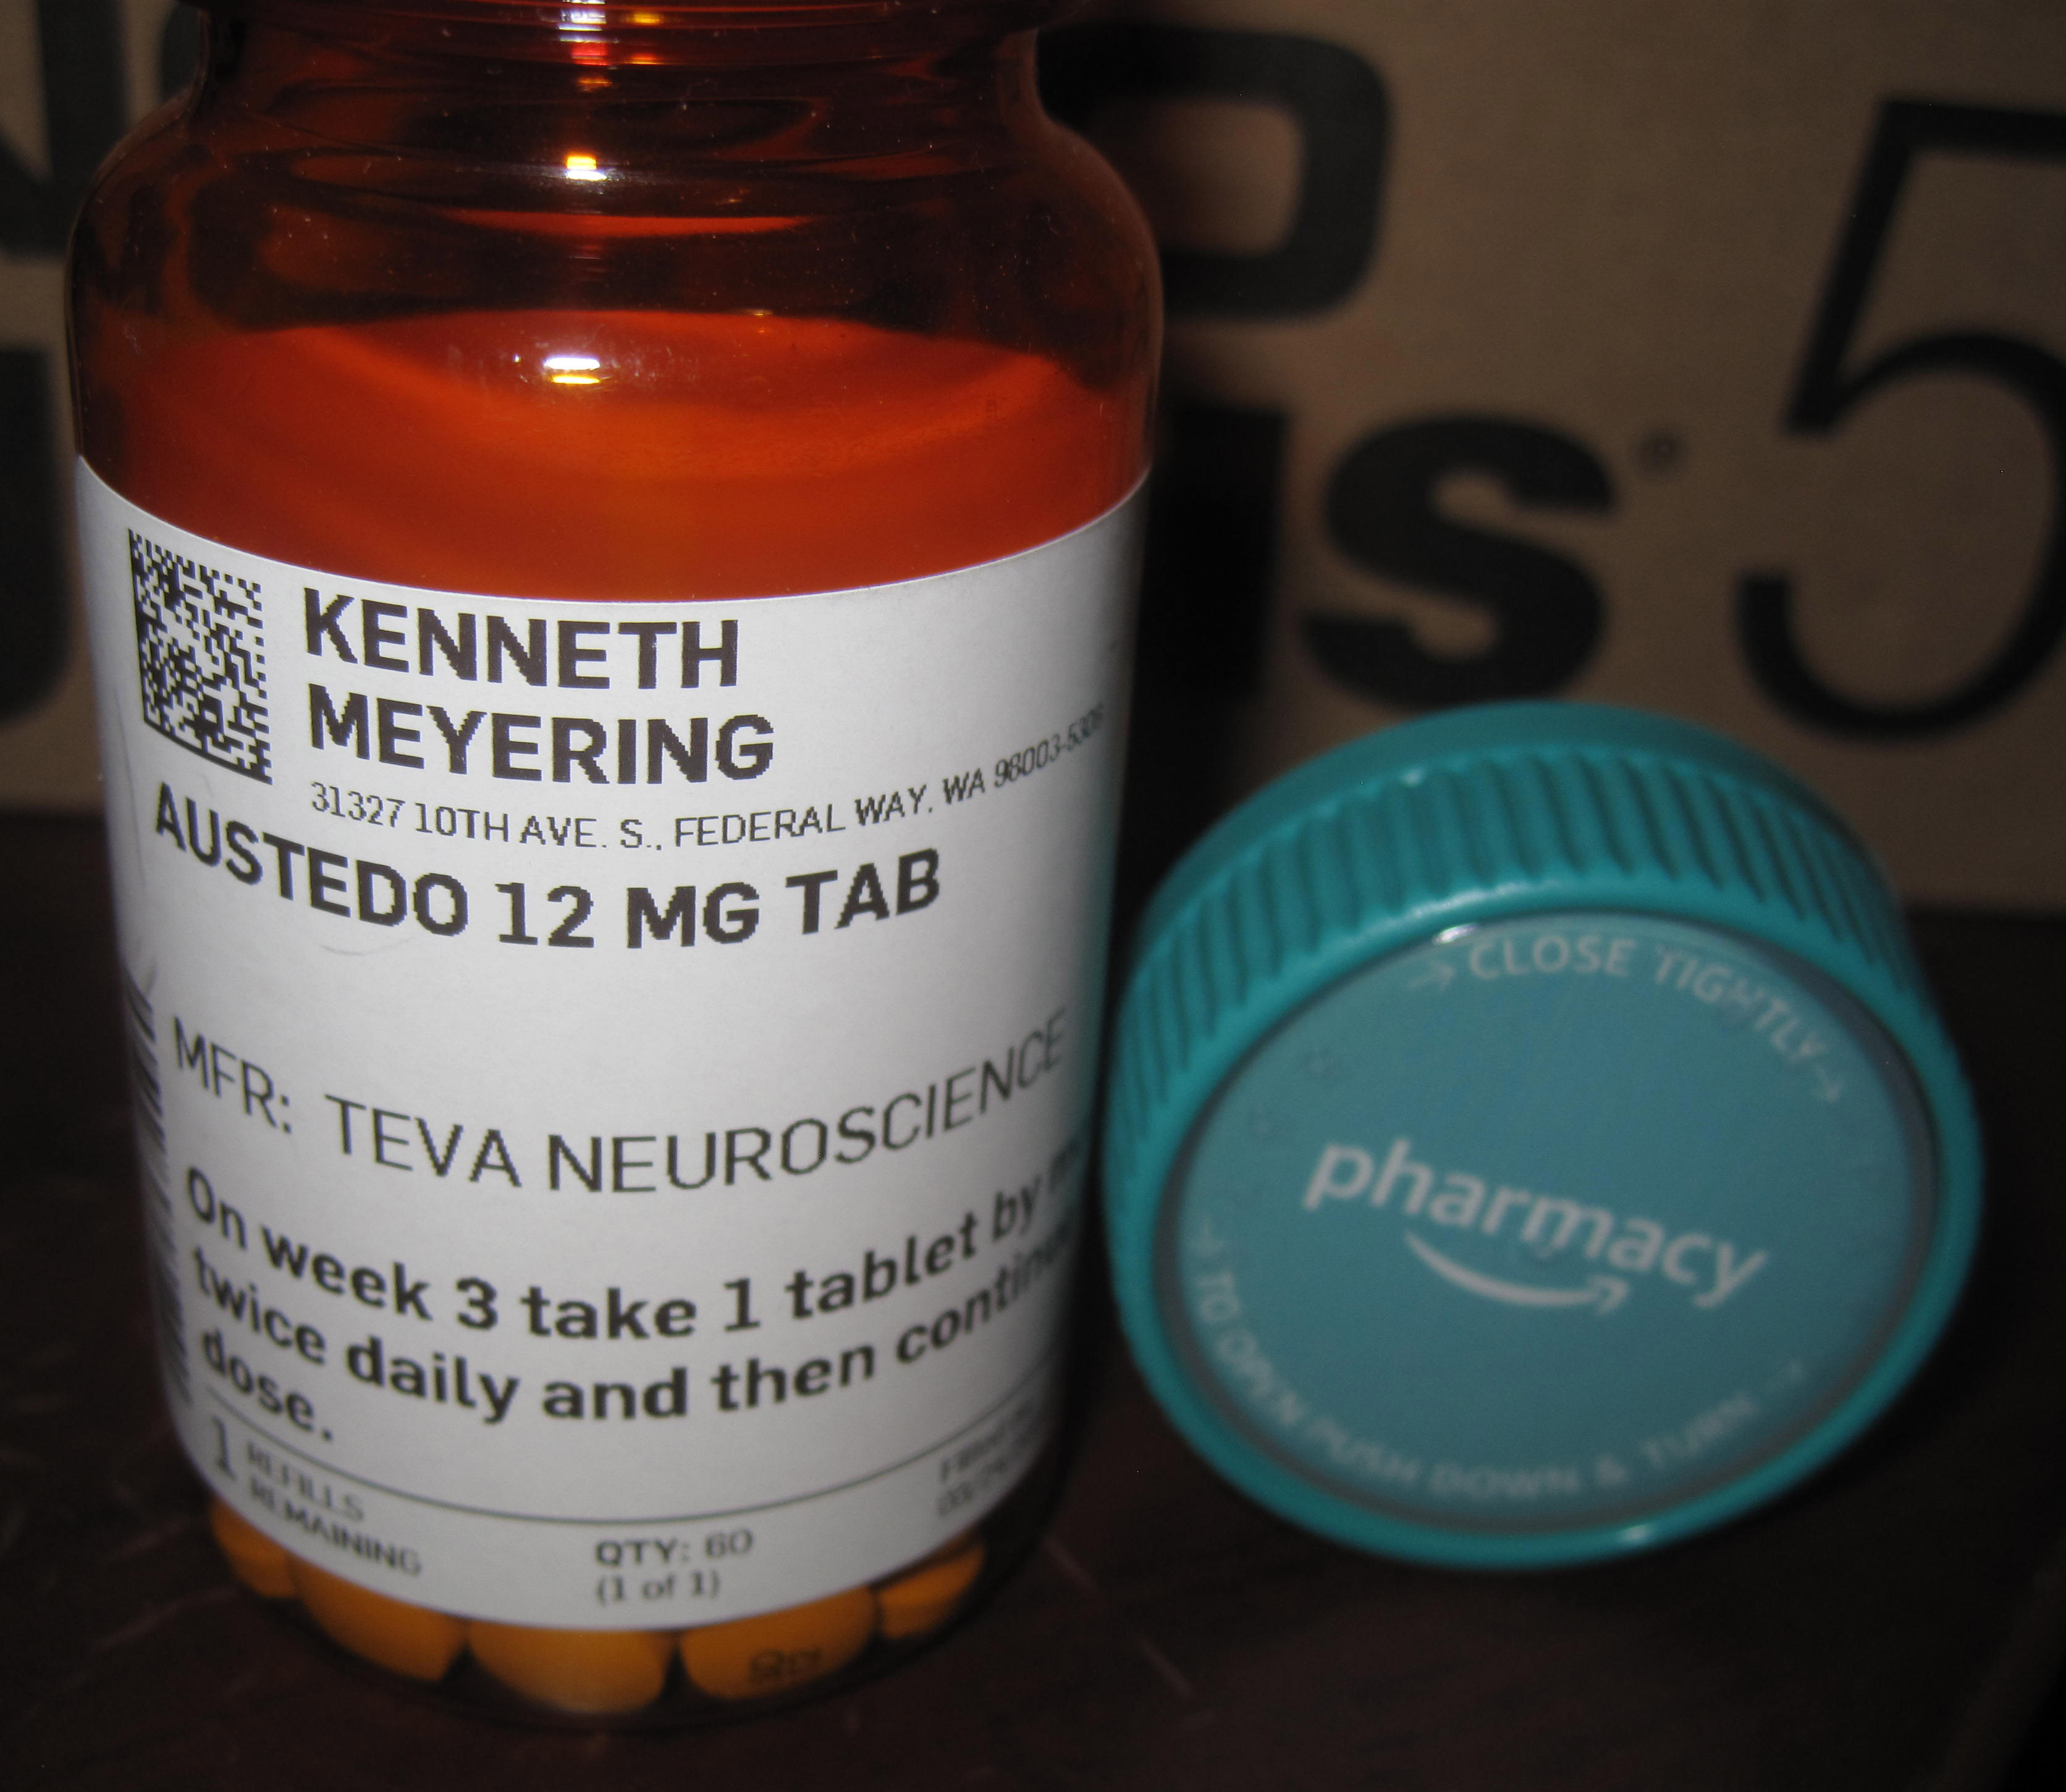 Ken's Austedo Prescription